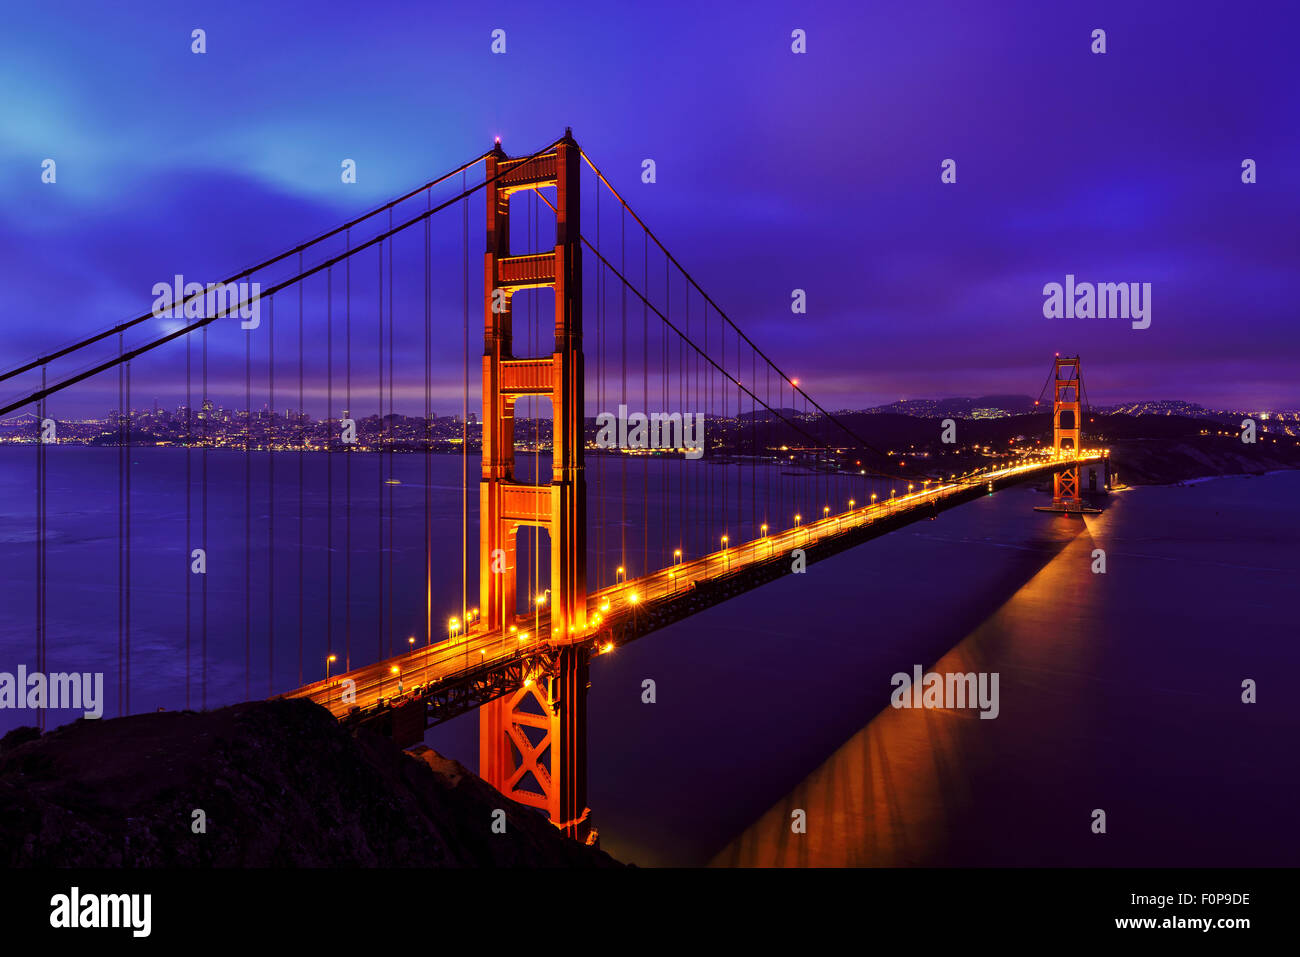 Blu notte al Golden Gate Bridge di San Francisco Immagini Stock